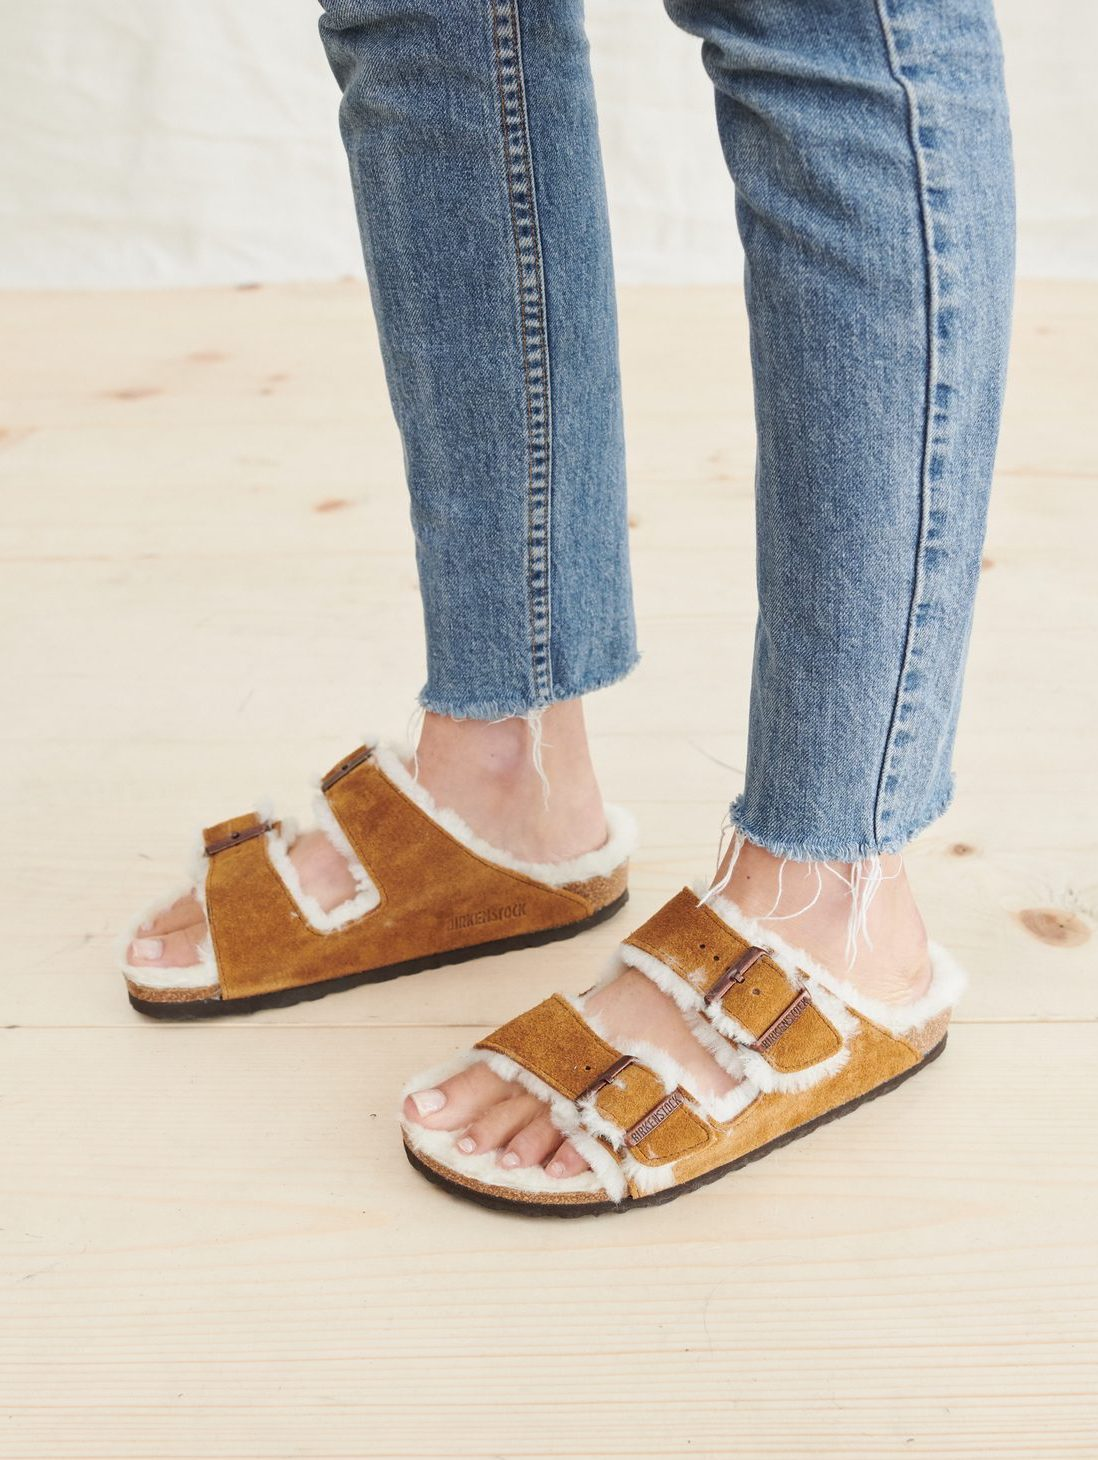 These Shearling-Lined Birkenstock Sandals Are Perfect for Fall